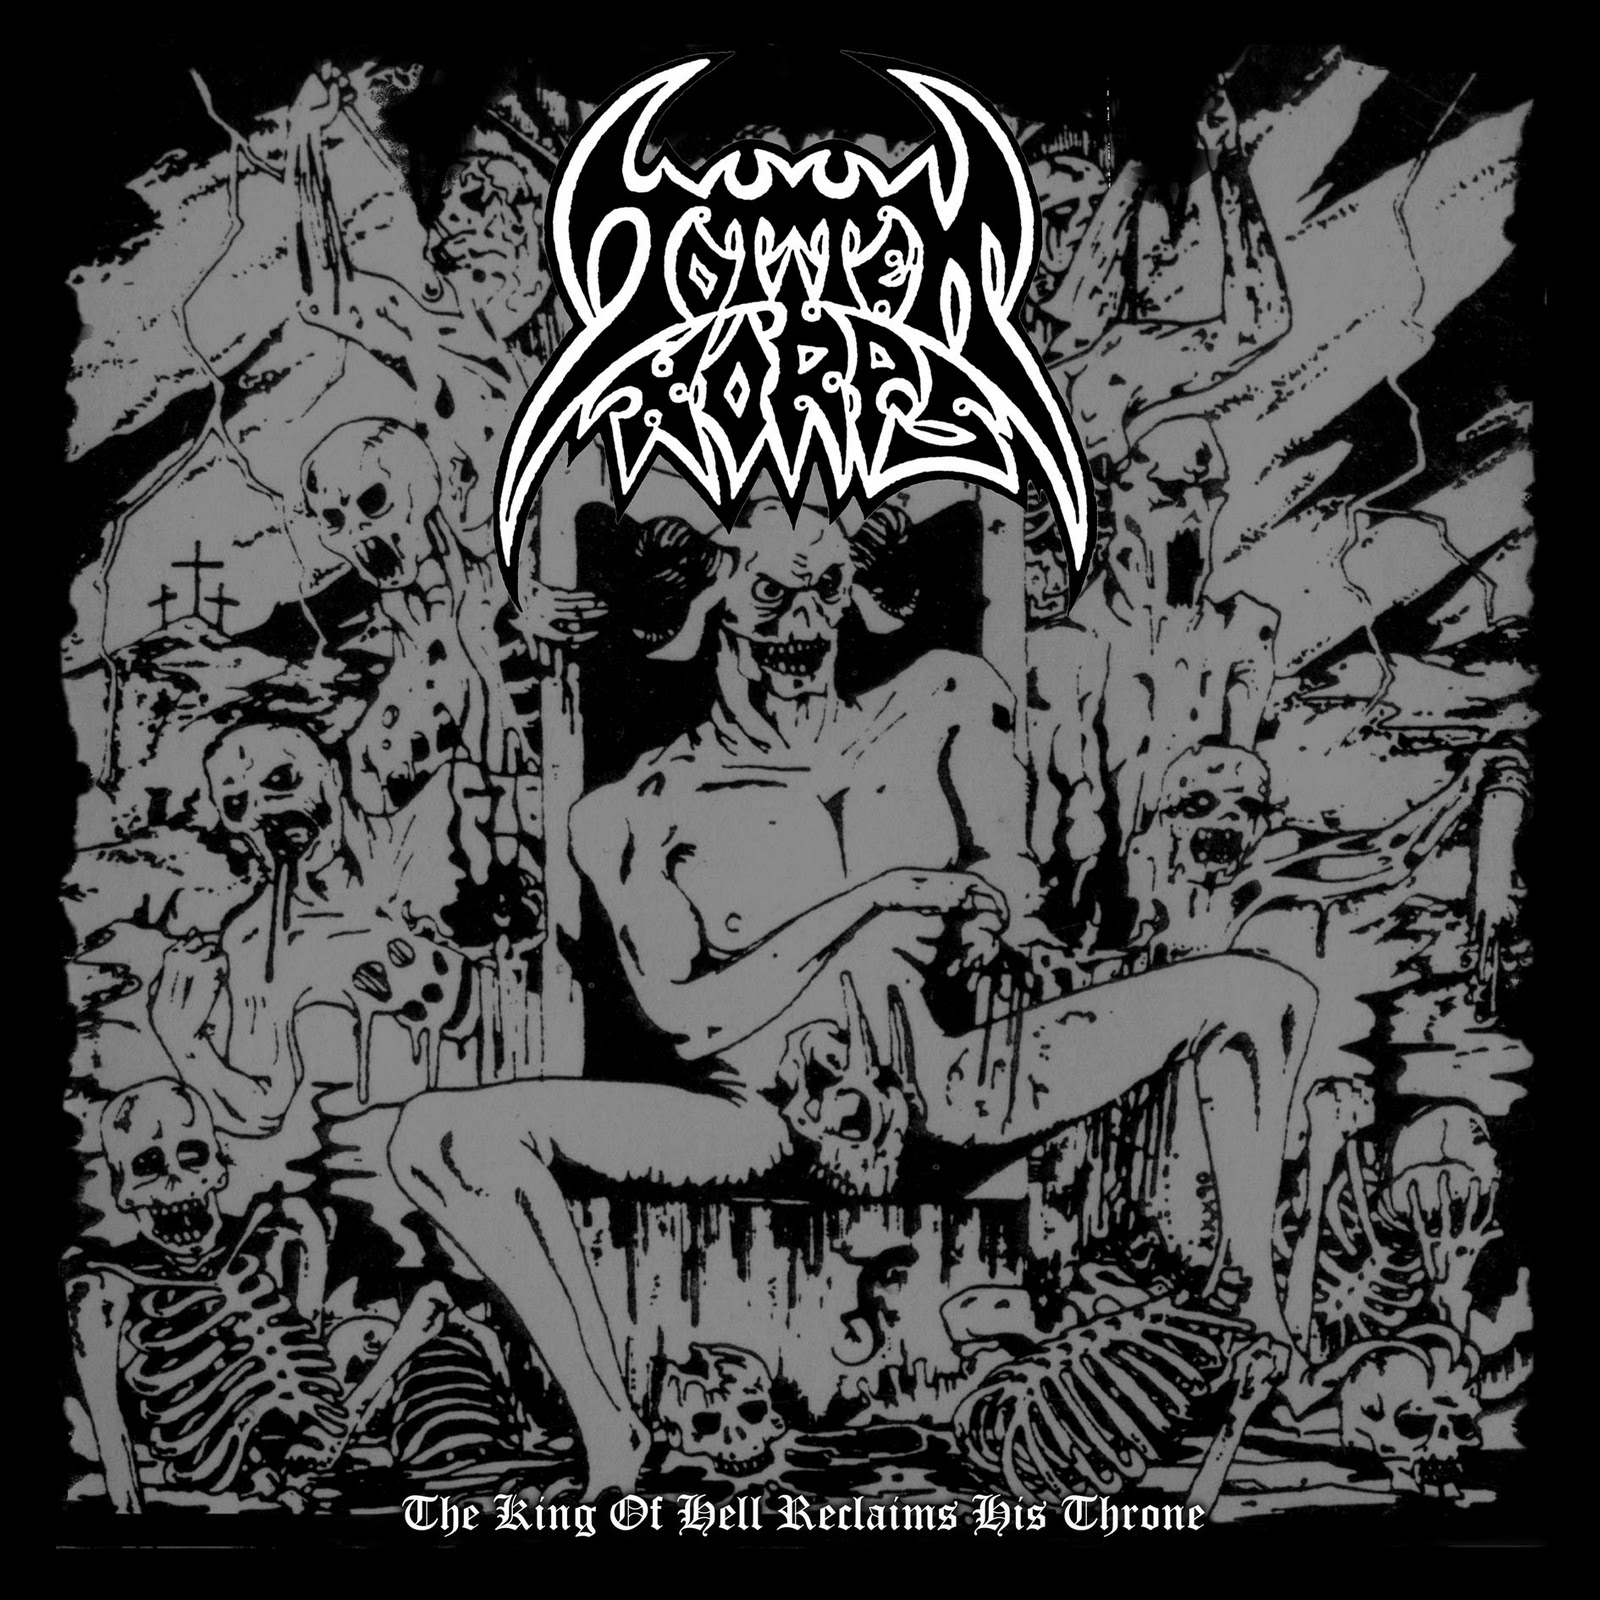 Totten Korps - The King Of Hell Reclaims His Throne